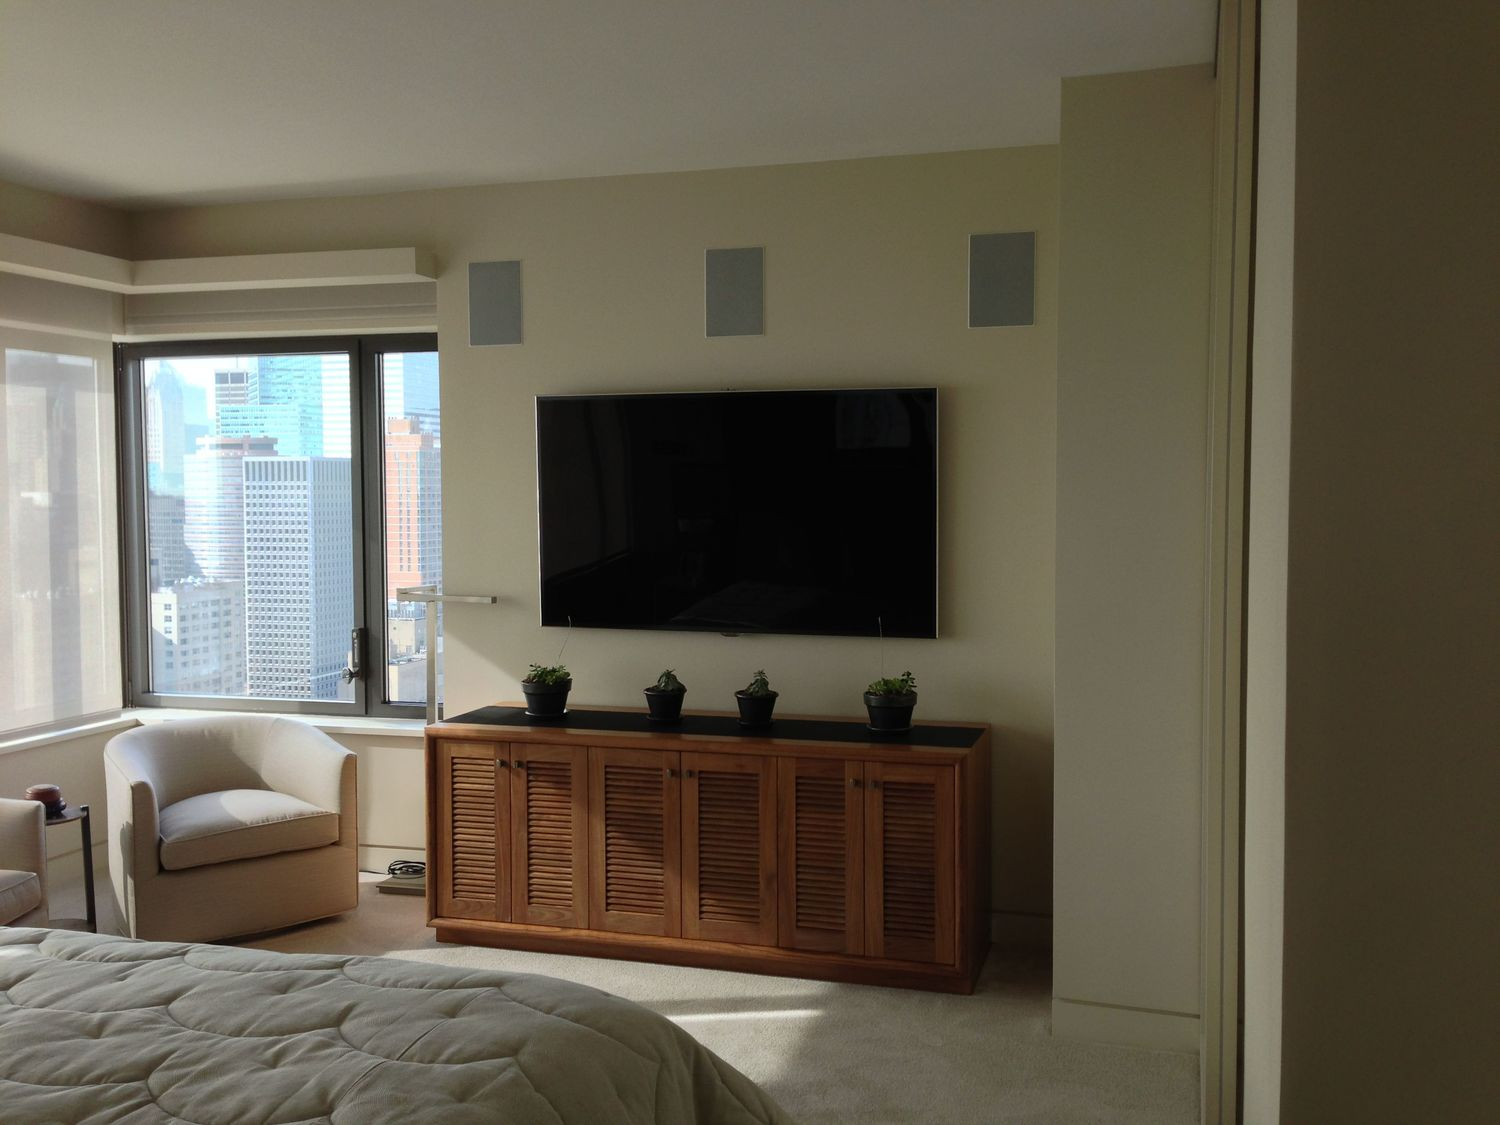 """This is another view of the 70"""" TV from the perspective of the bed where it will be watched."""